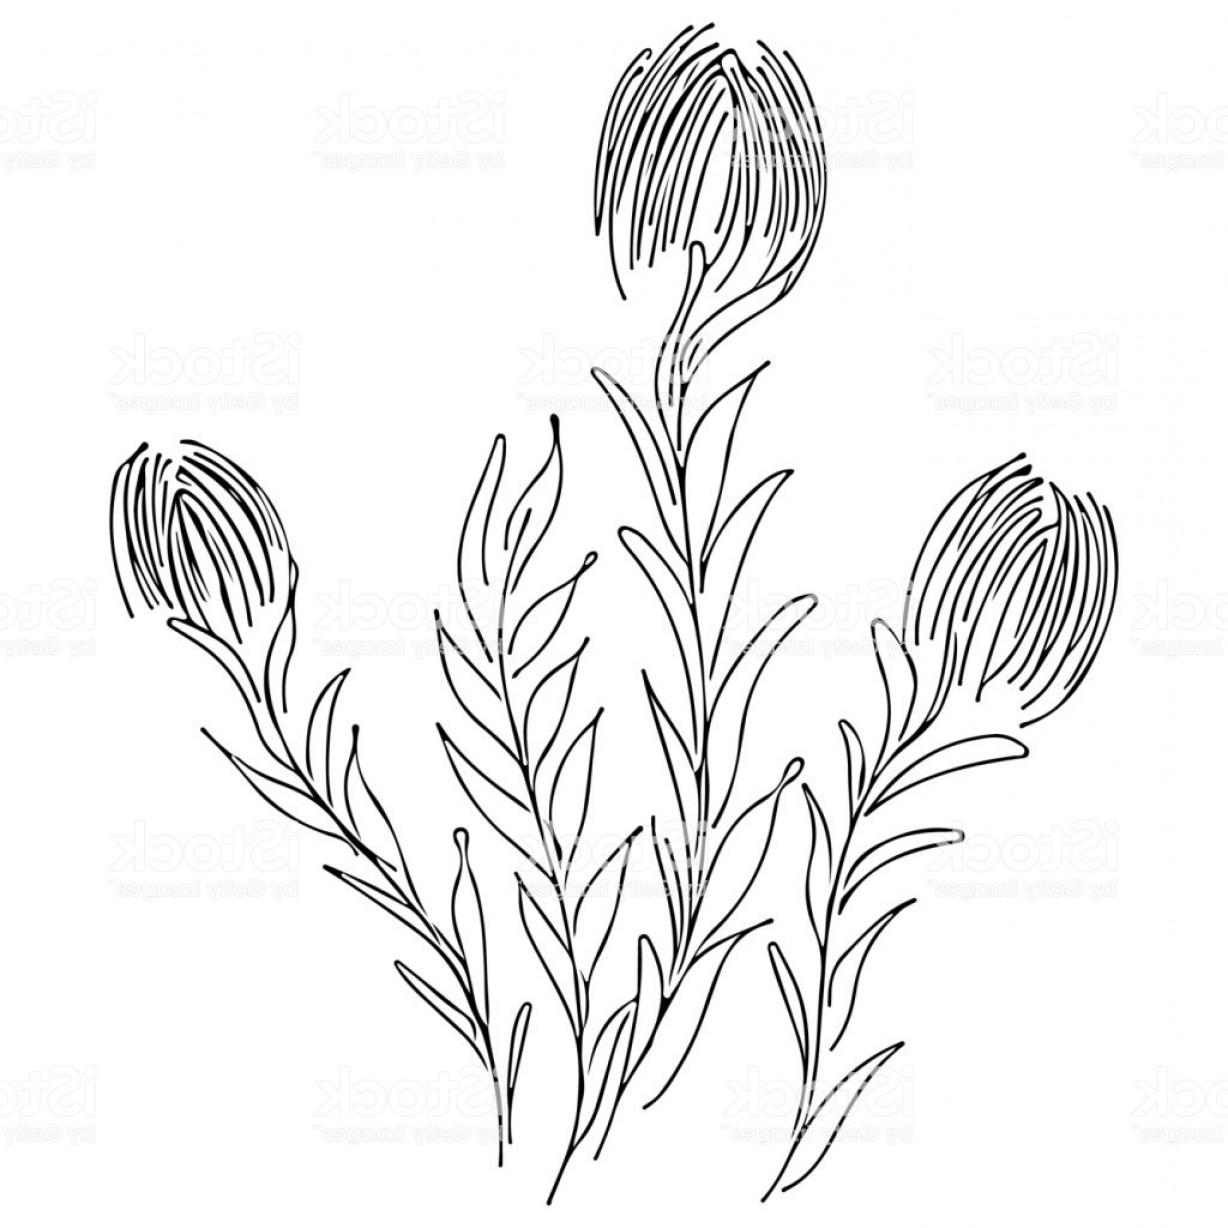 Wildflowers Outline Vector: Abstract Wildflowers Outline Icon Isolated On White Background Hand Drawn Vector Gm